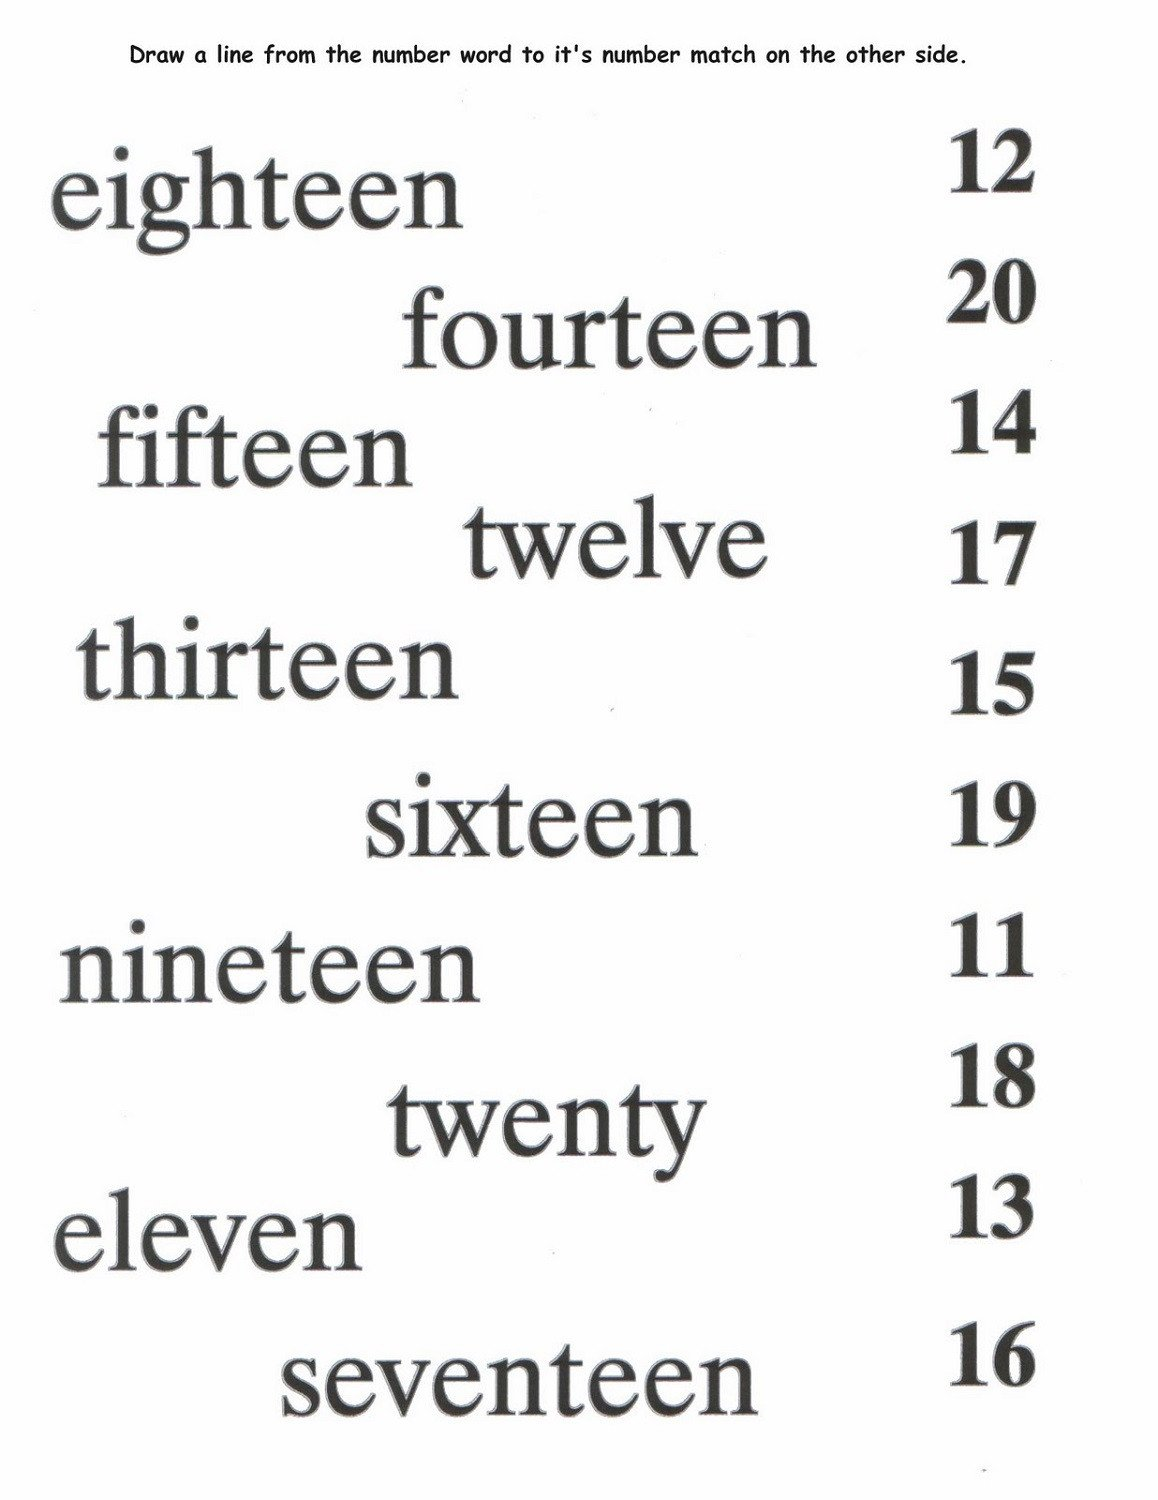 Matching Numbers to Words Worksheet Printable Number Names Worksheets